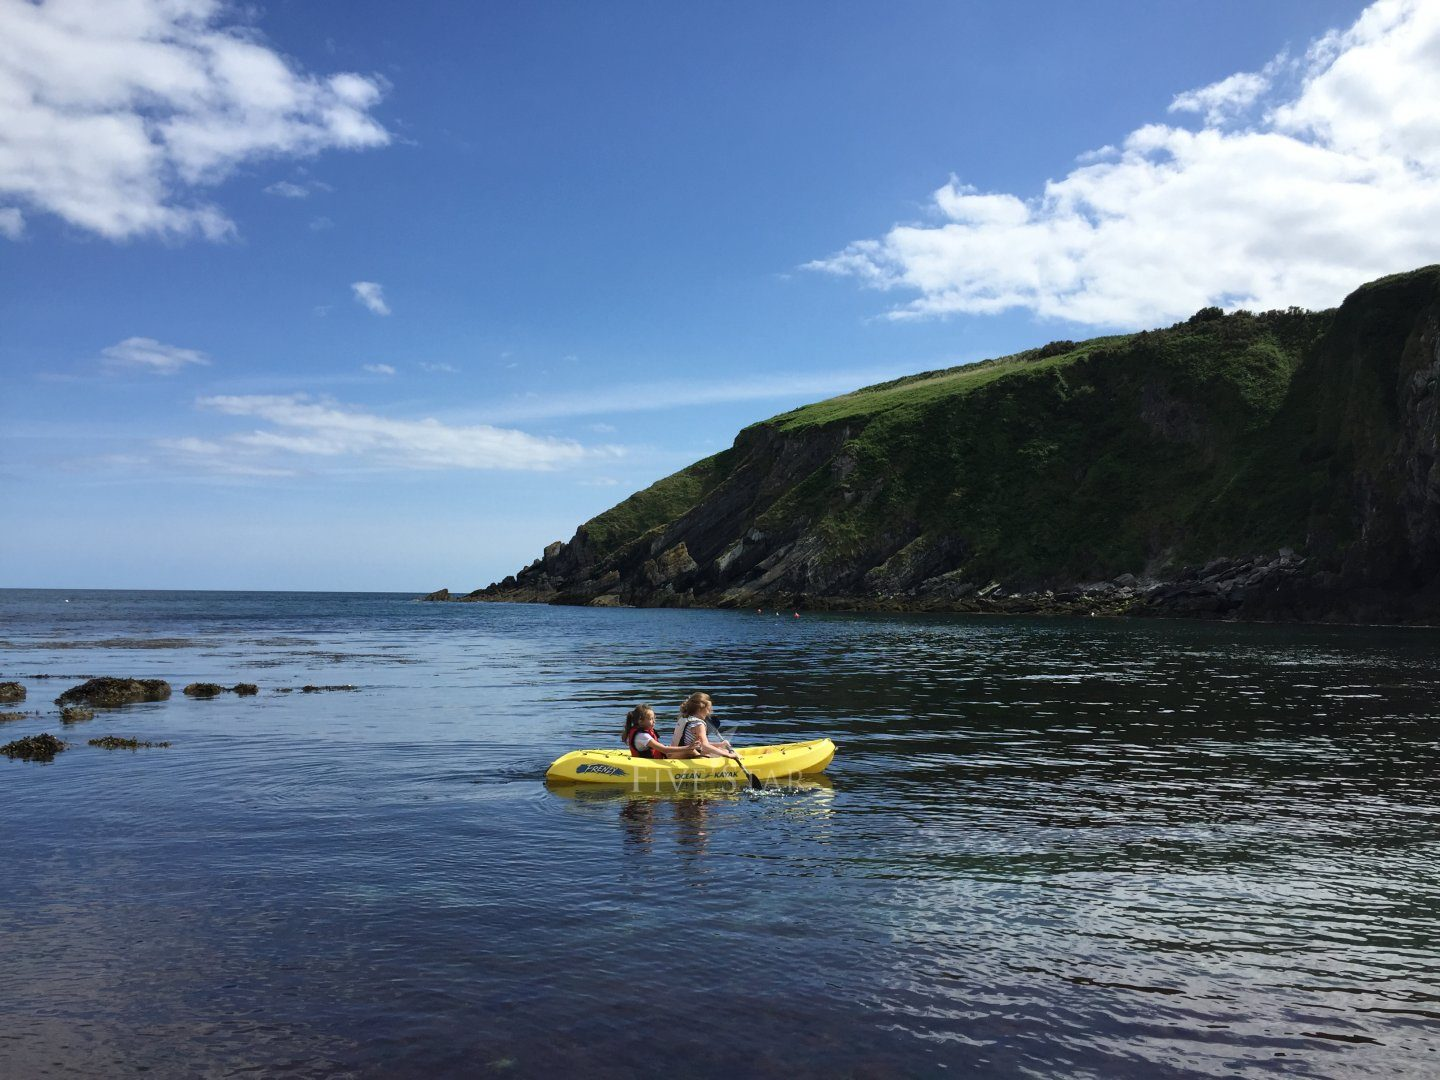 Kayaking at Sands Cove, beside house